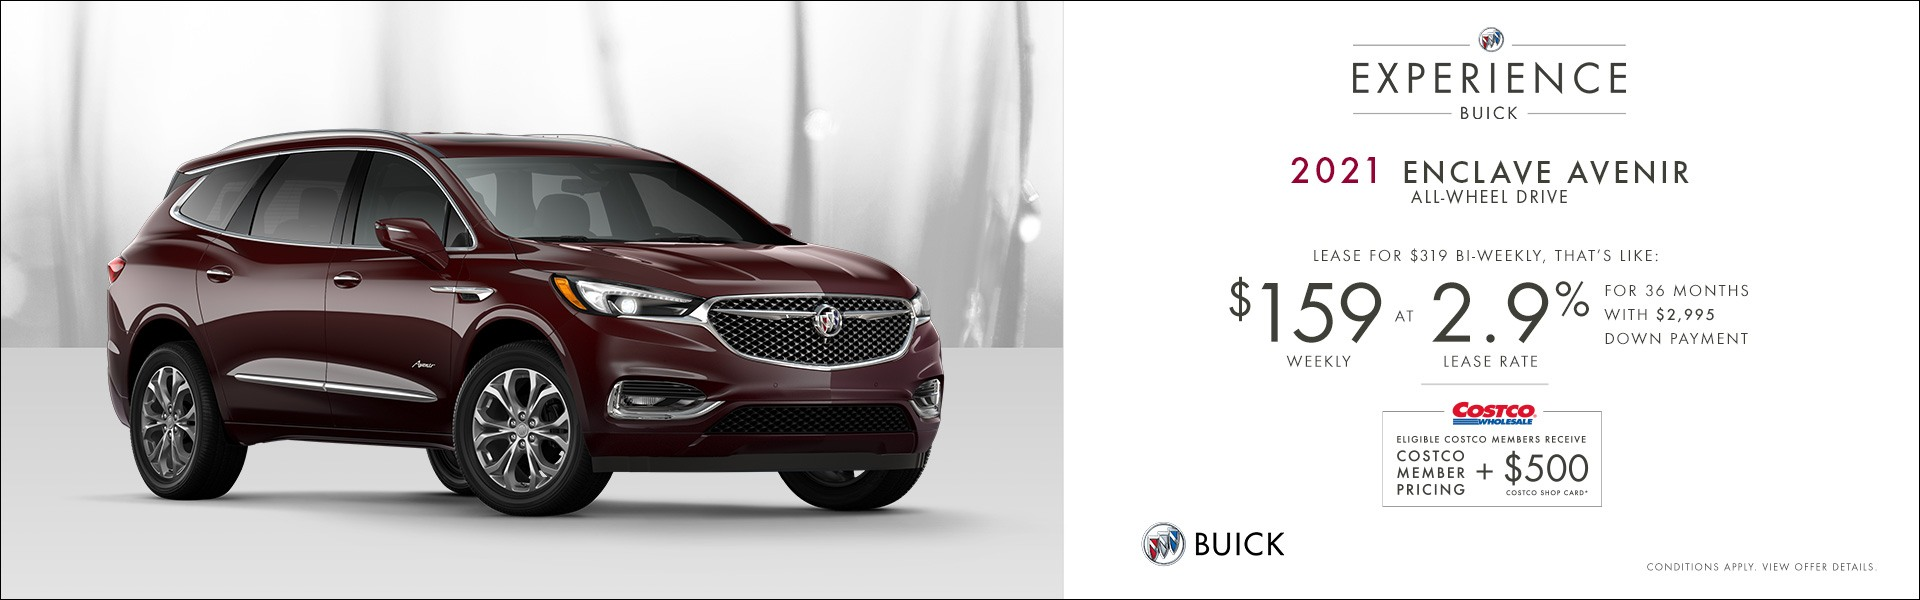 Western - Buick Enclave - English